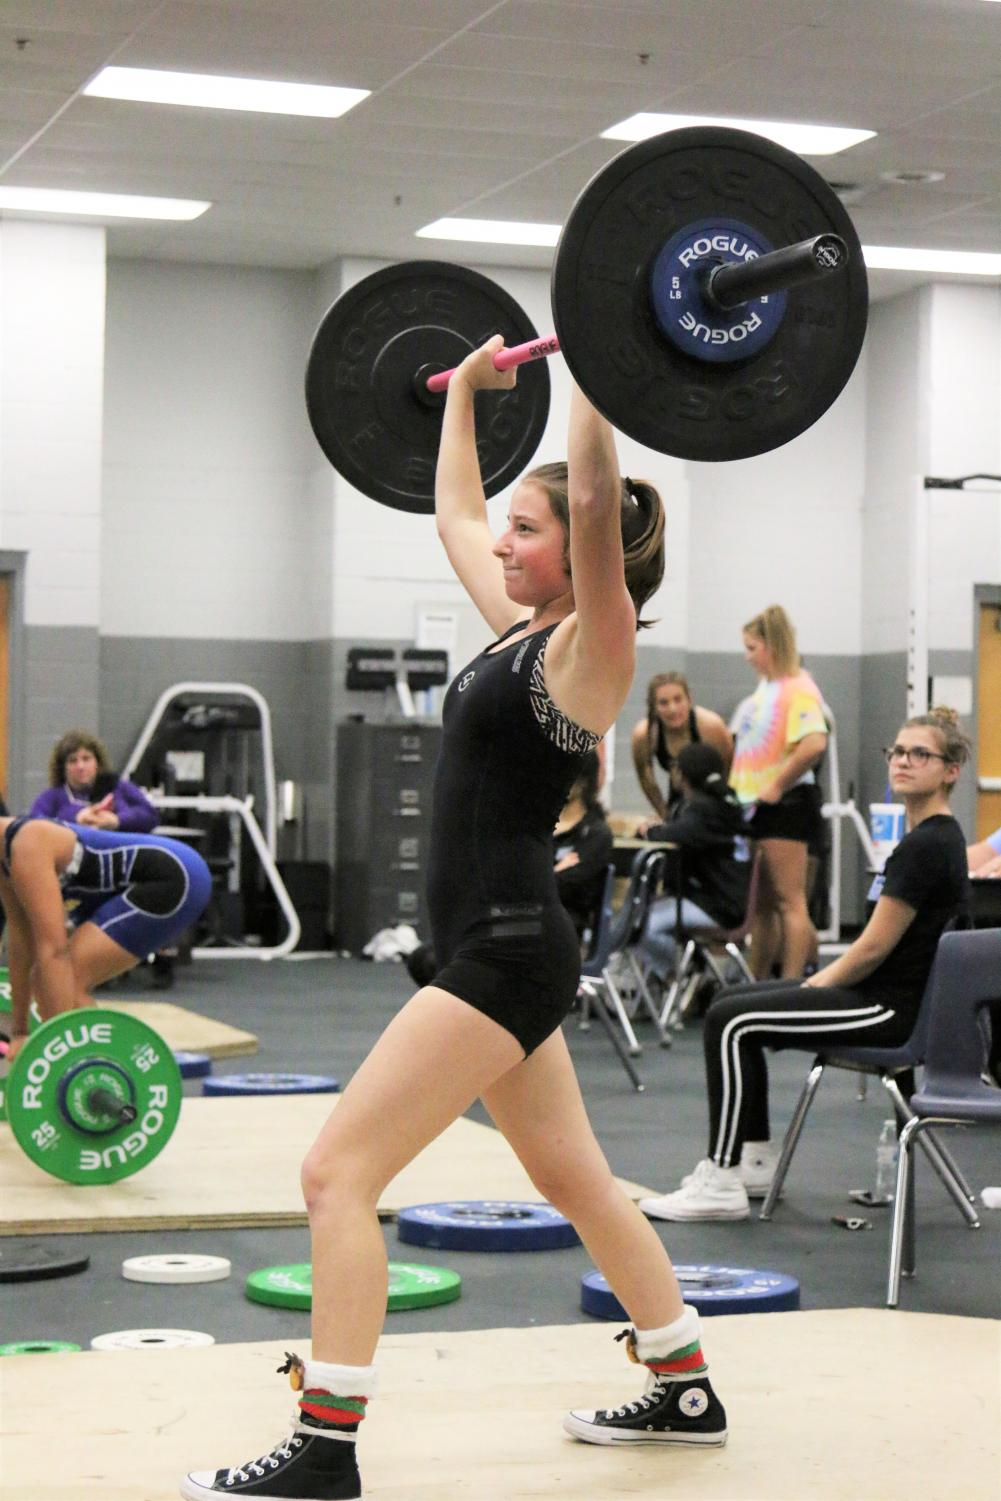 Sophmore Daryn Miller on her second clean and jerk attempt during a match against Lyman.